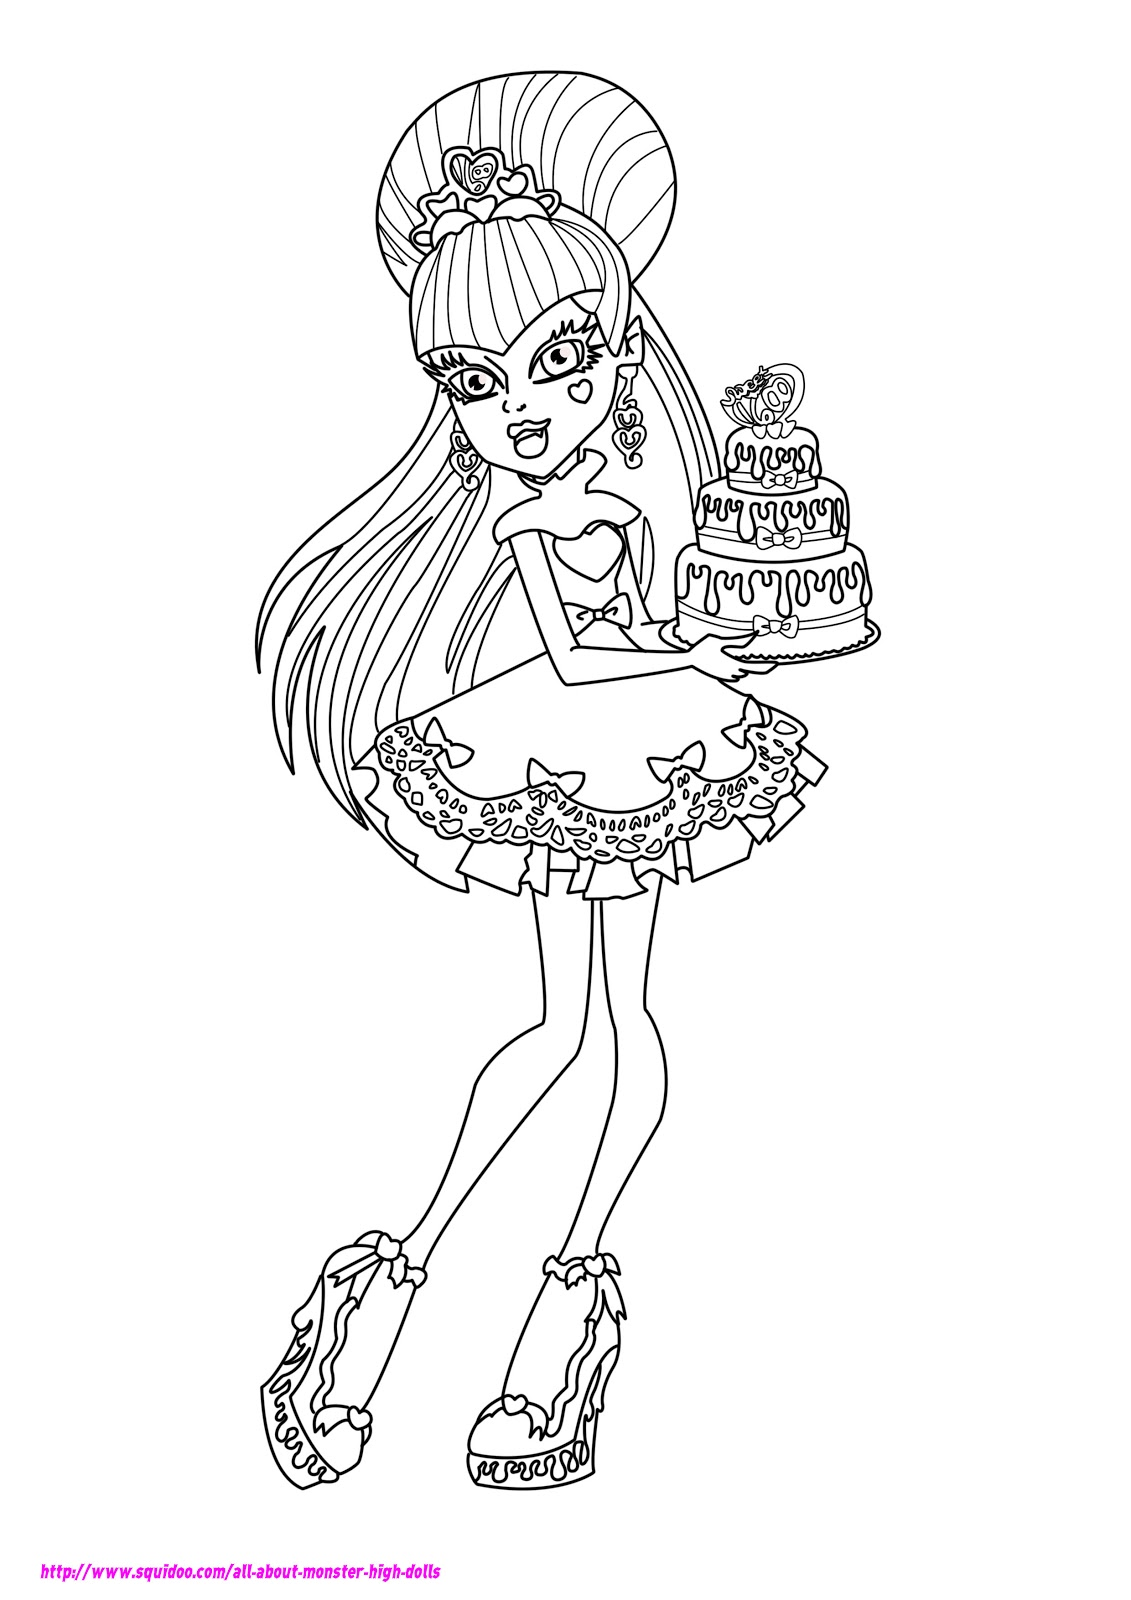 Szydelkowo monster high draculaura for Draculaura monster high coloring pages